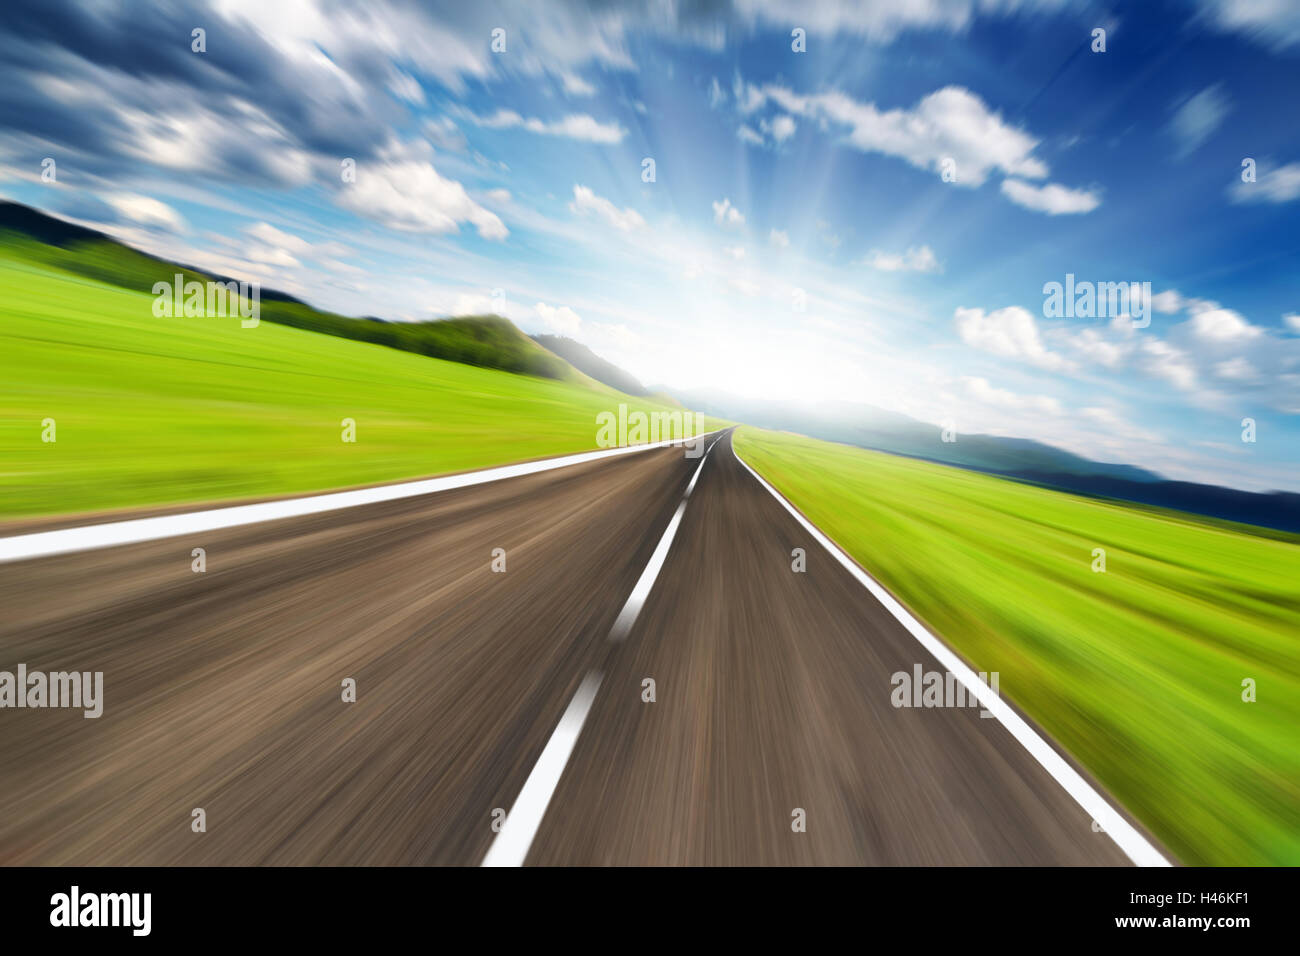 Empty road with motion blur - Stock Image